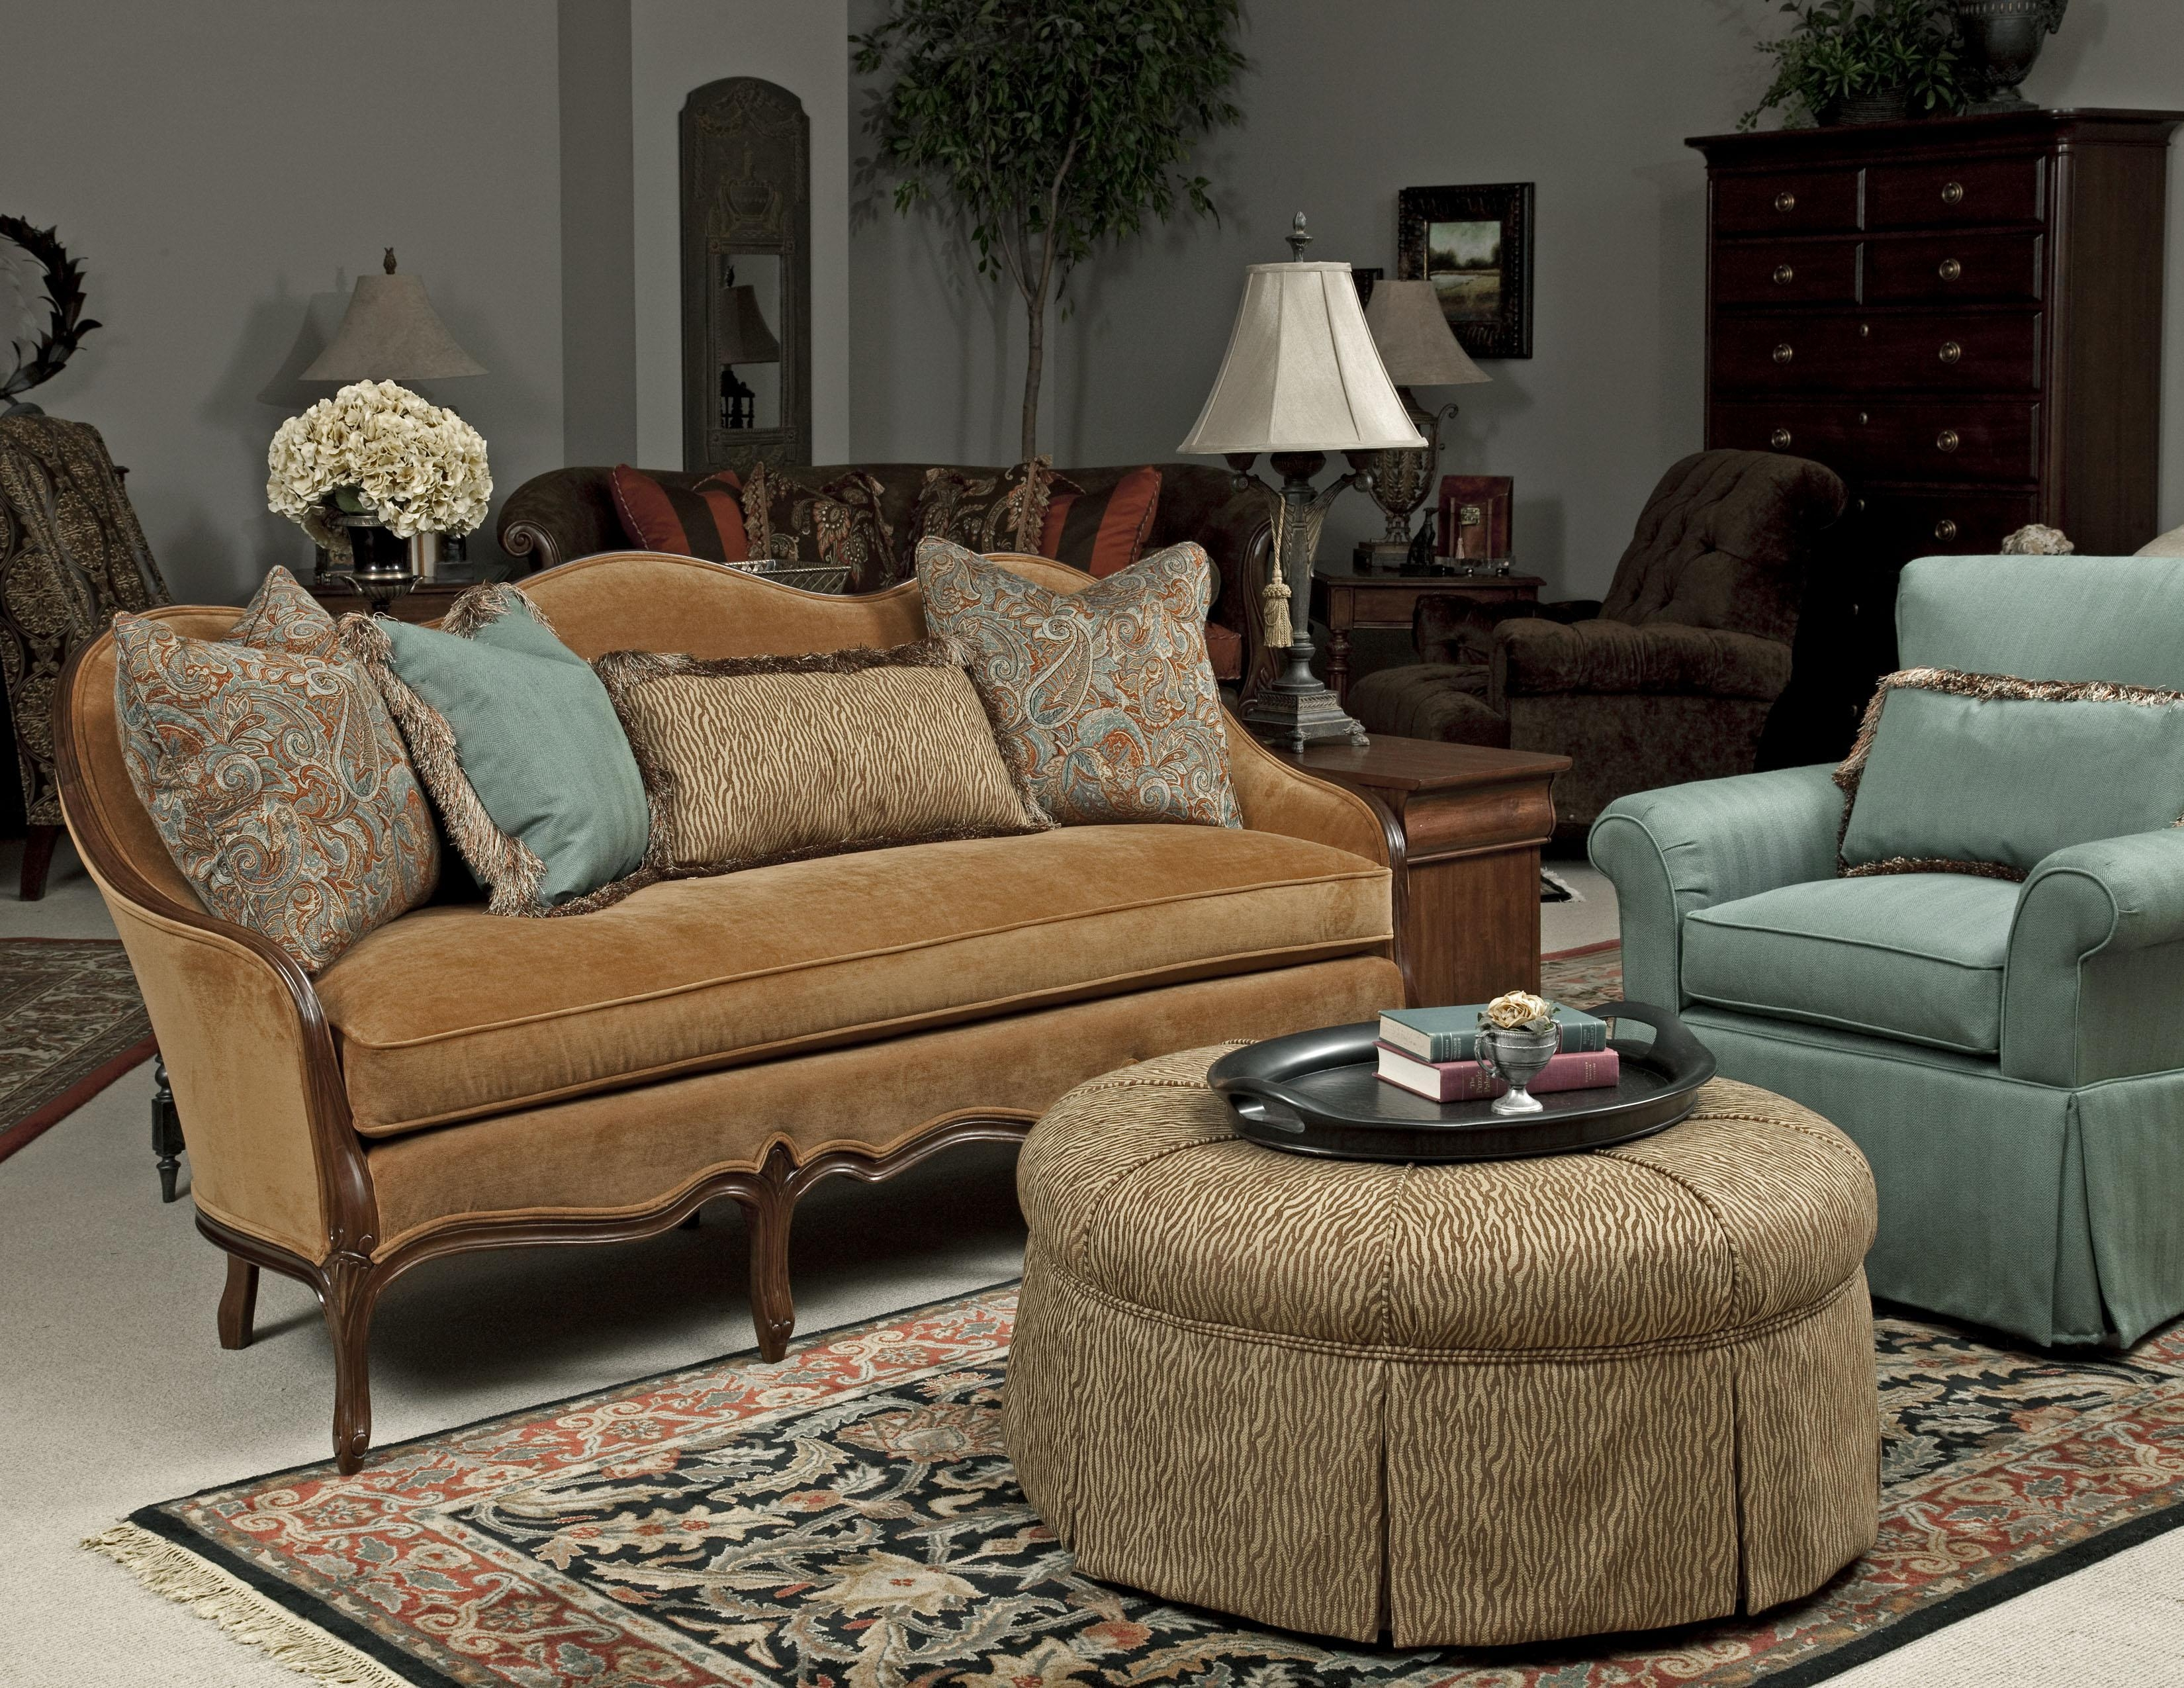 Featured Image of Camel Color Sofas